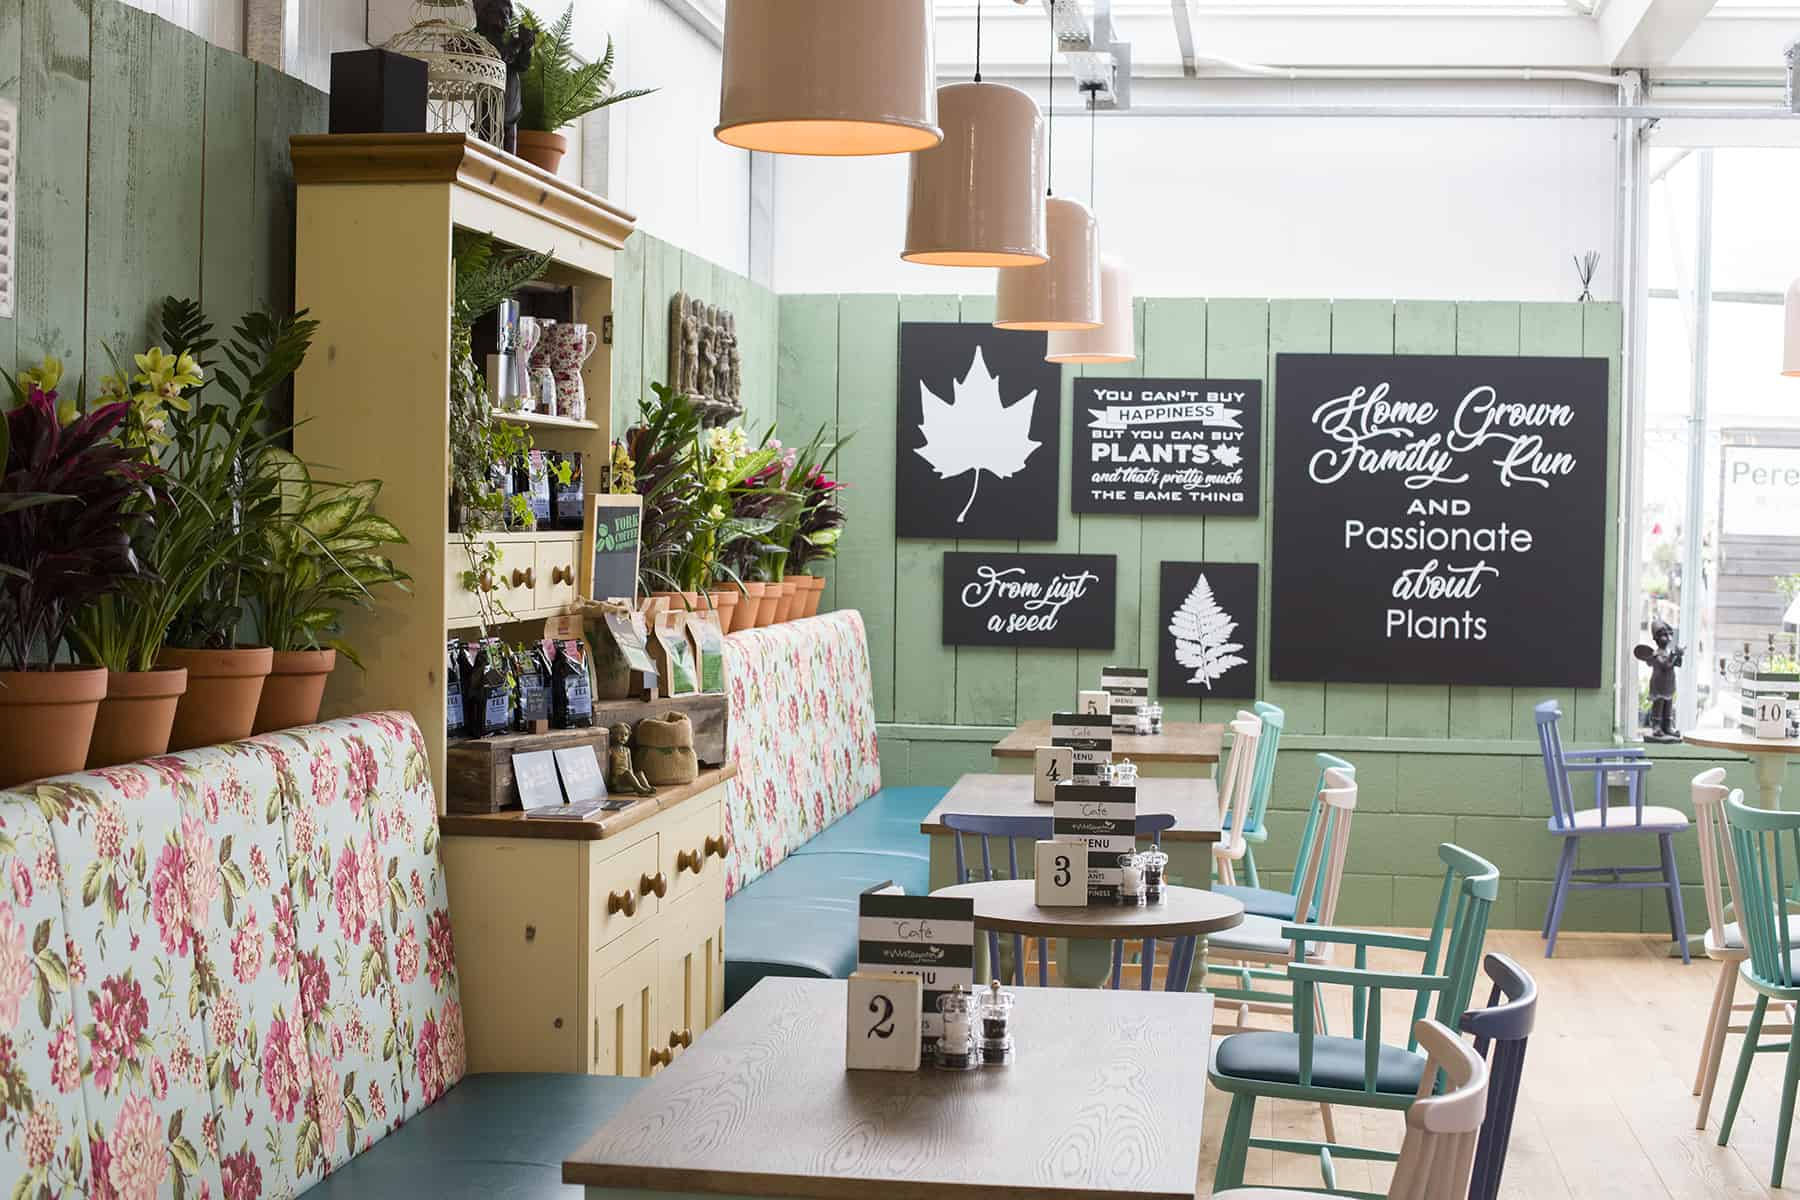 Top Tips on Garden Centre Restaurant and Cafe Design